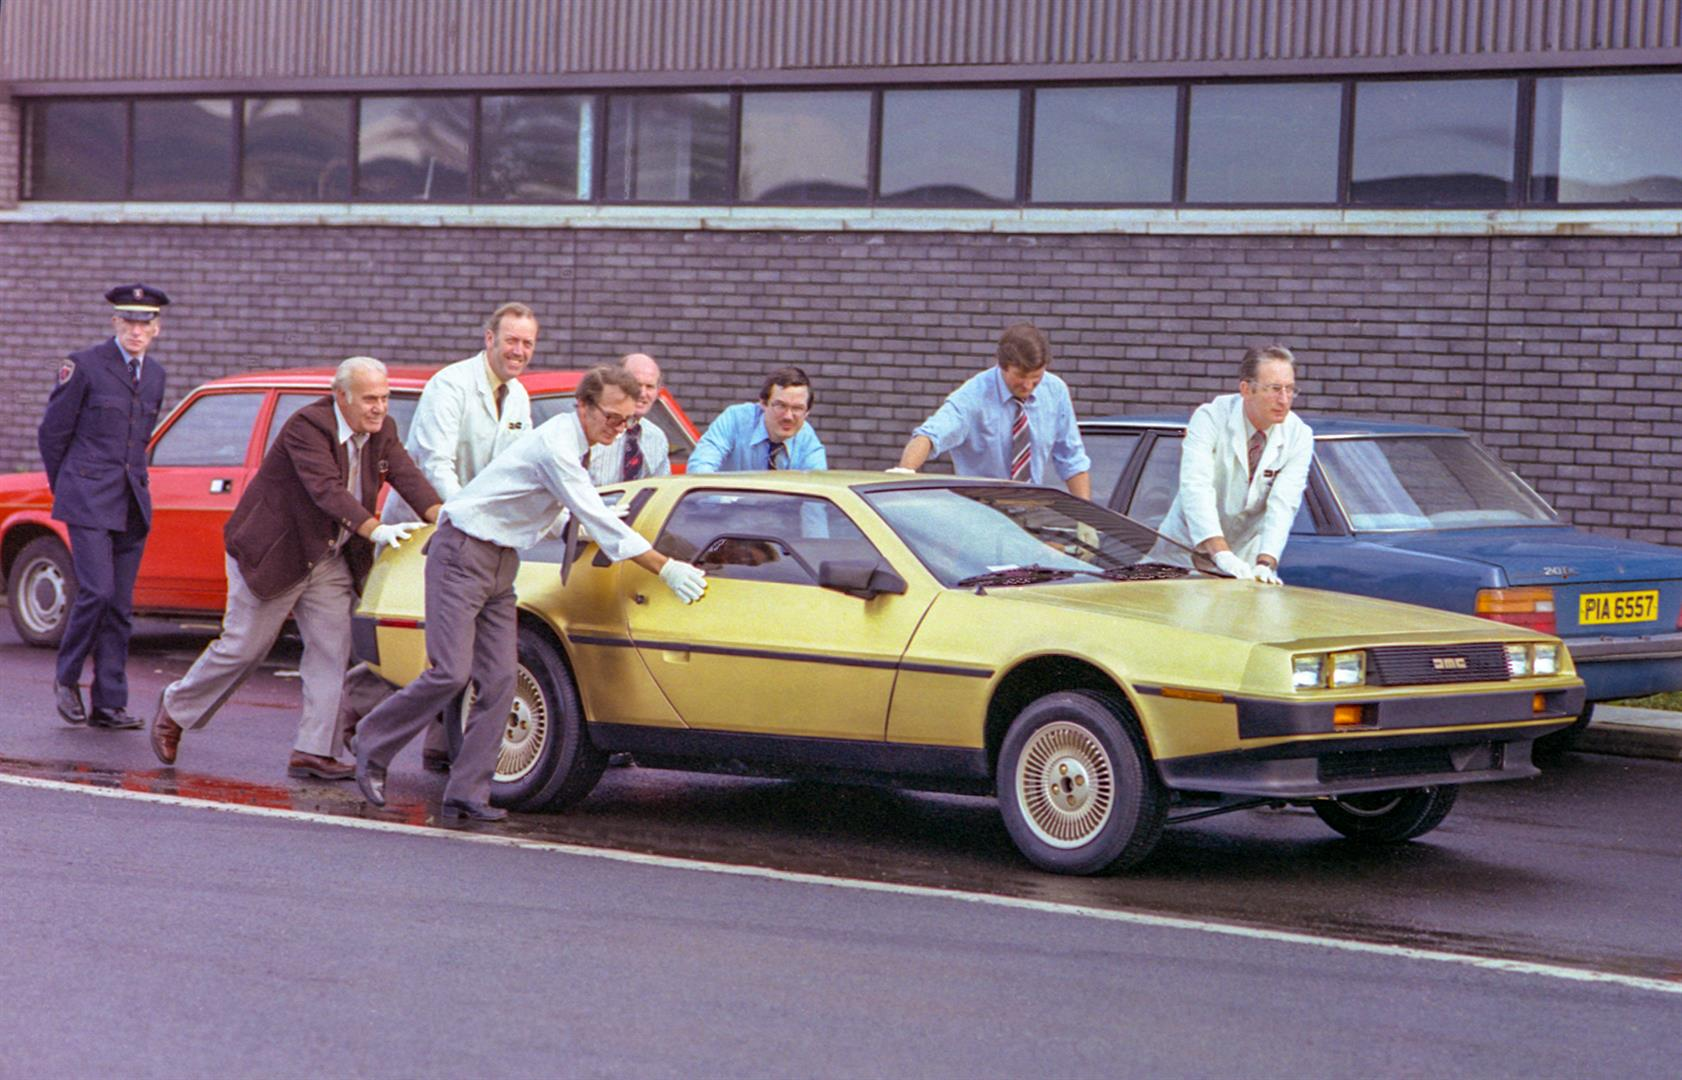 Moving the Gold car, with Tony McDade at rear and Dick Kendall second from the left | DeLoreanDirectory.com